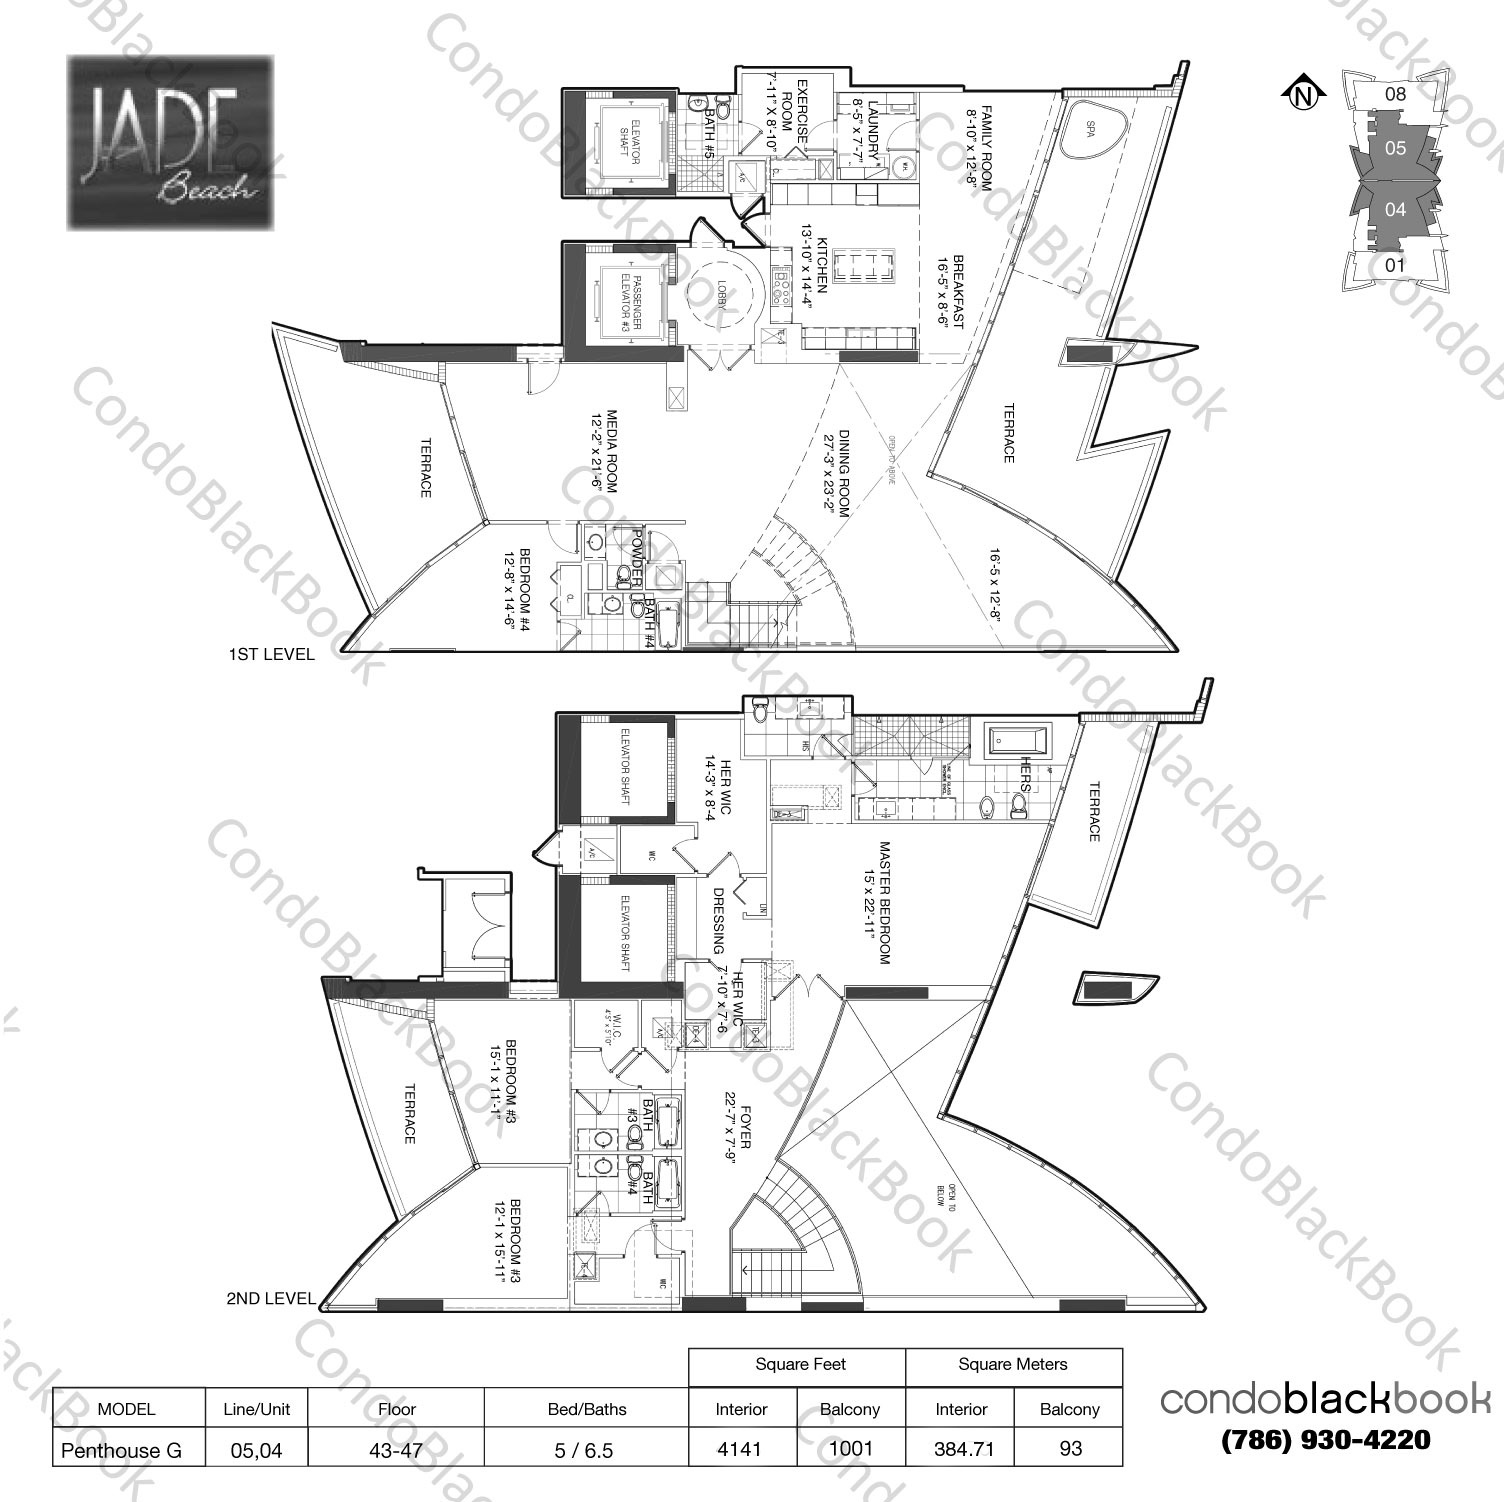 Floor plan for Jade Beach Sunny Isles Beach, model Penthouse G, line 05,04, 5 / 6.5 bedrooms, 4525 sq ft